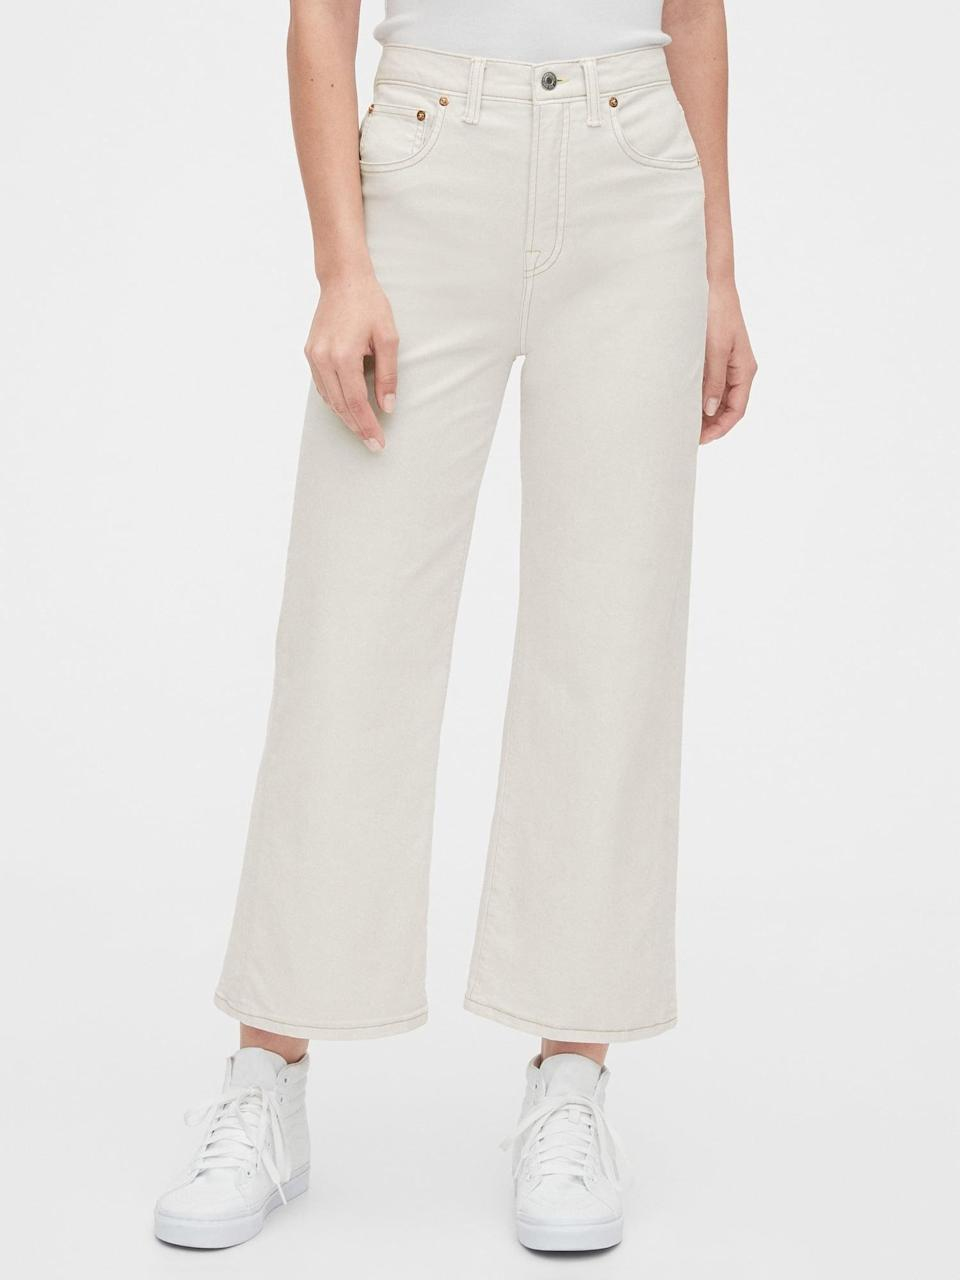 """<p>""""I have never subscribed to the 'no white after Labor Day' rule, and that will continue this season. I've been searching for an off-white or cream pair with a wider leg, and I think the <span>Gap High Rise Wide-Leg Crop Jeans</span> ($49, originally $70) are it. Also, if you want in on a little secret, I think Gap makes some of the most comfortable, affordable jeans on the market. I have multiple pairs and think they're a sleeper hit."""" - IY</p>"""